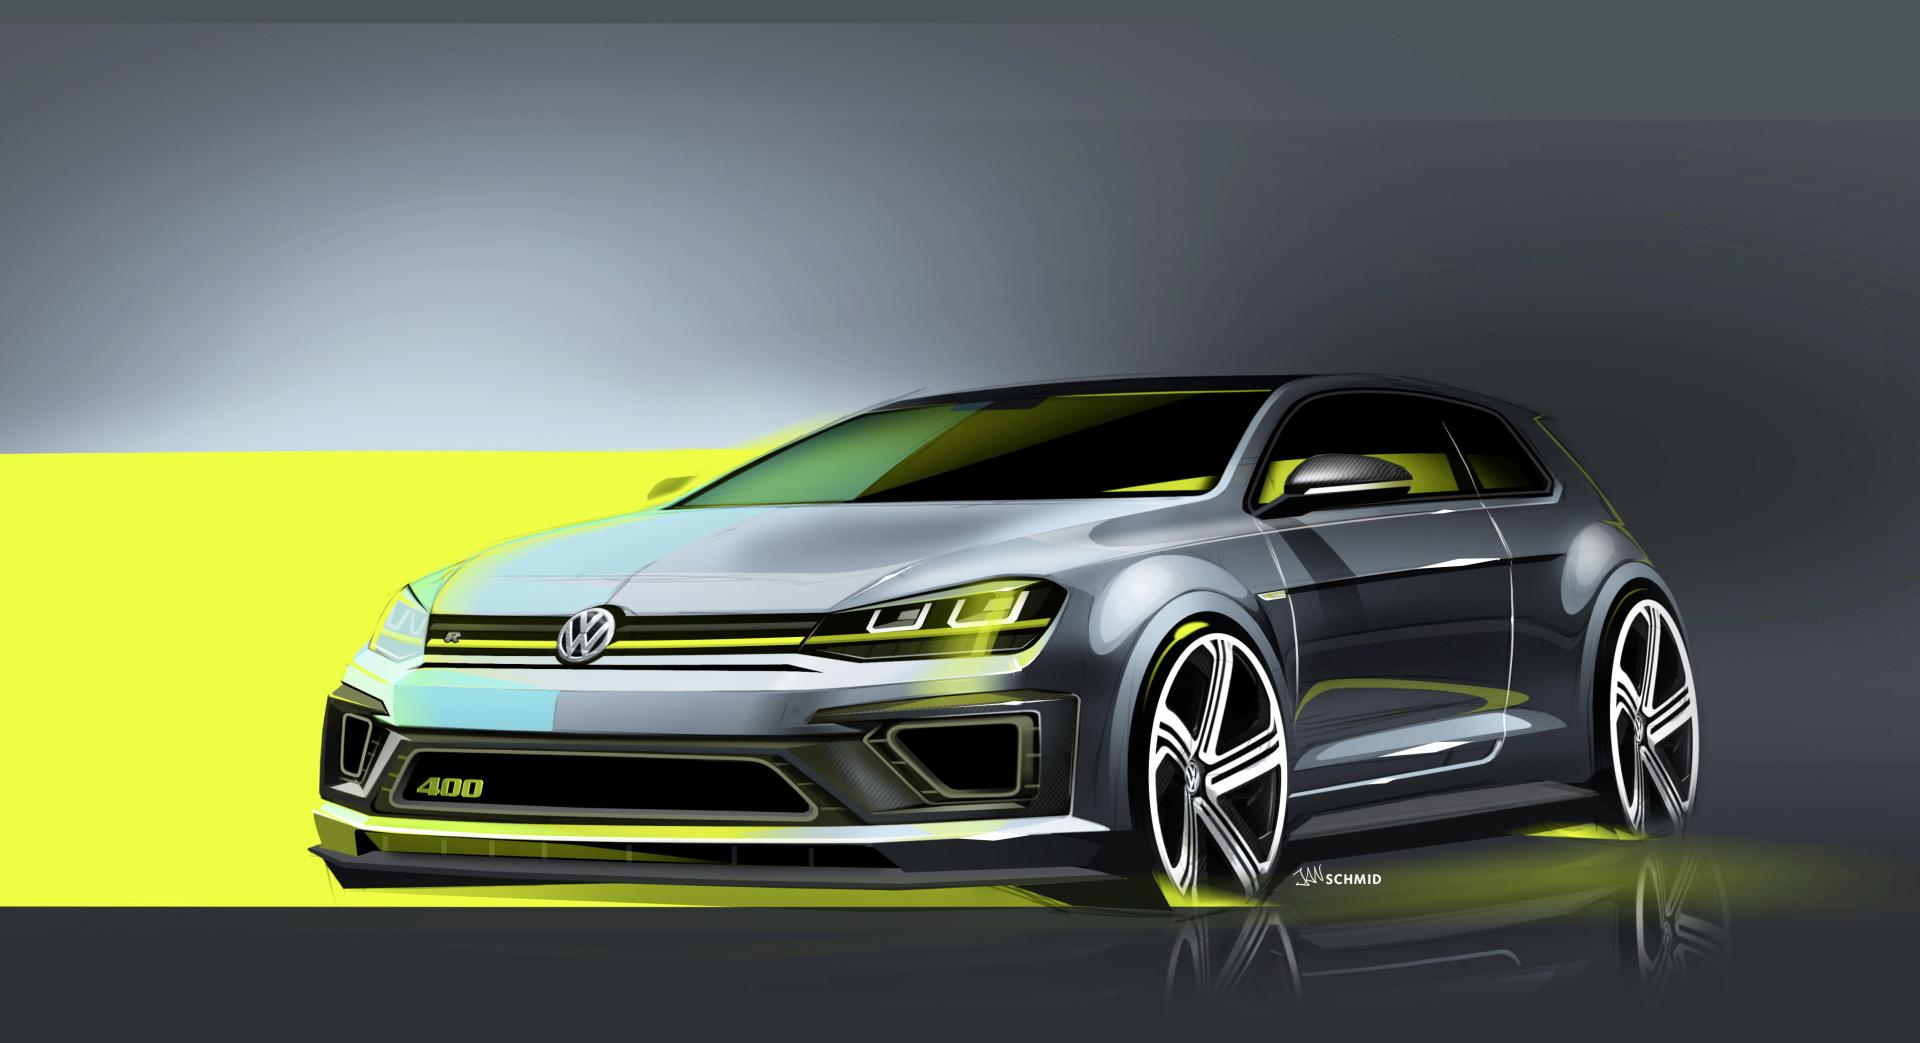 2017 Volkswagen Golf R 400 Concept News And Information Research History